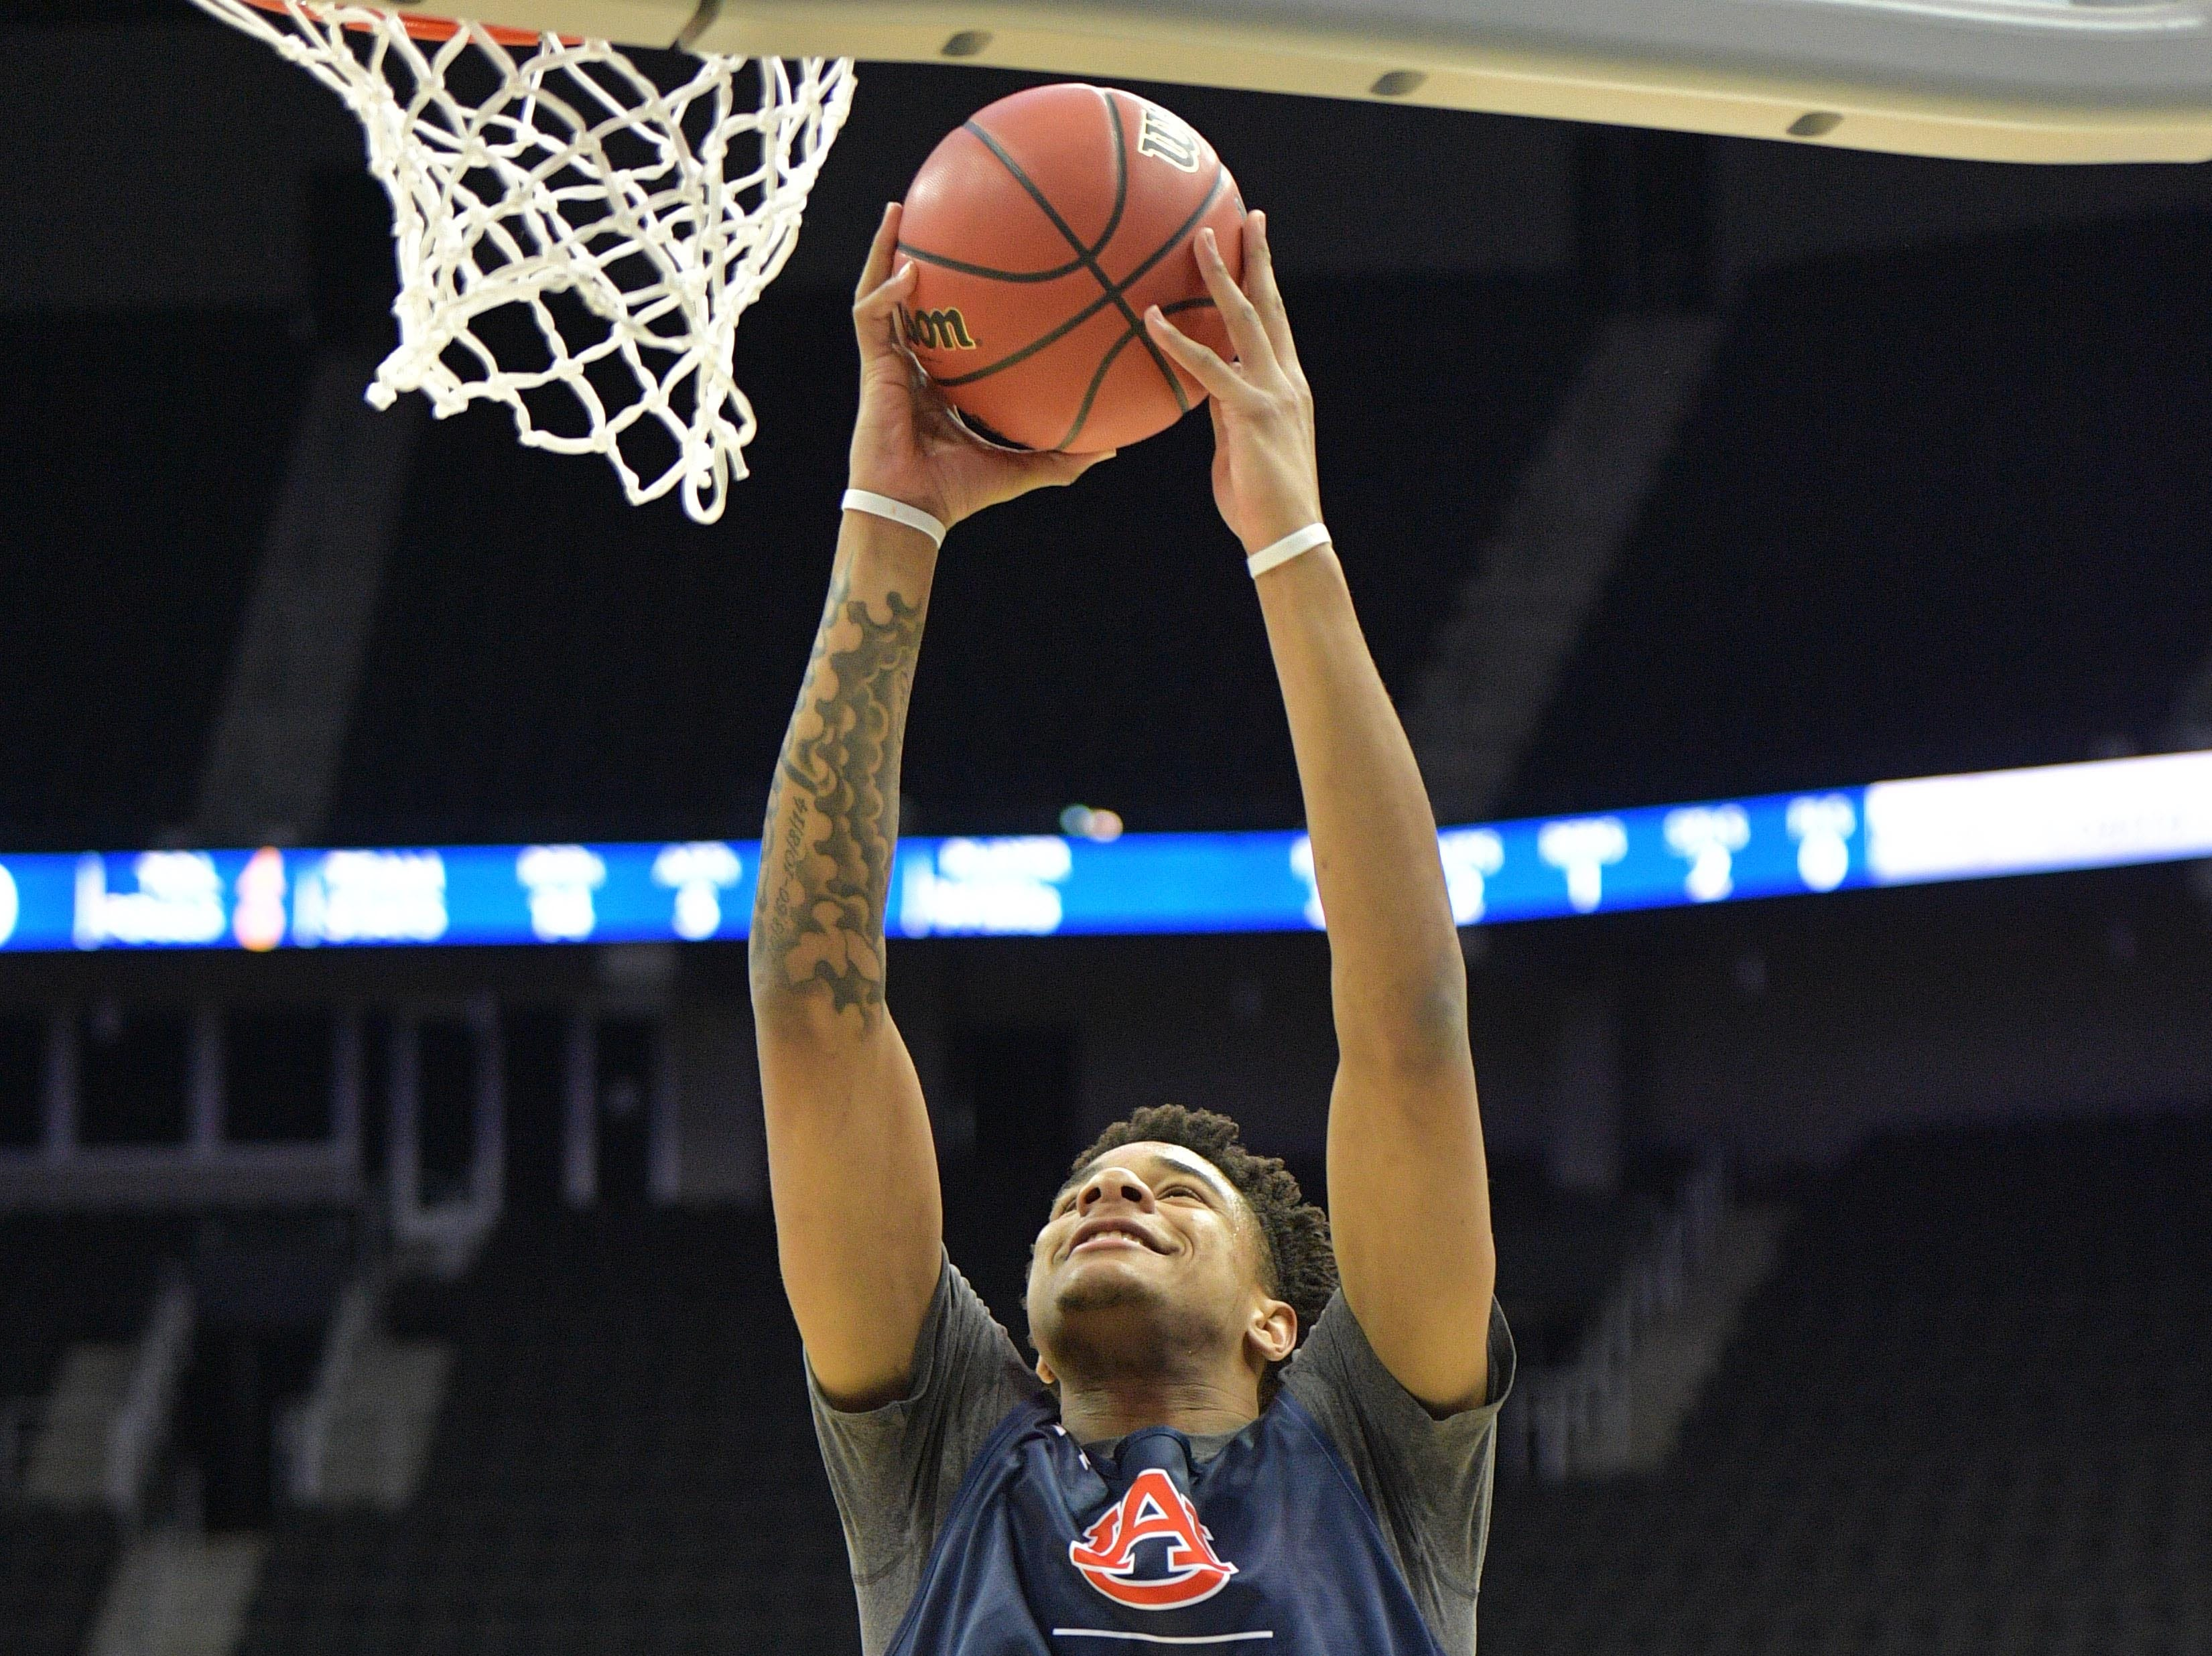 Mar 28, 2019; Kansas City, MO, United States; Auburn Tigers forward Chuma Okeke (5) shoots during practice for the midwest regional of the 2019 NCAA Tournament at Sprint Center. Mandatory Credit: Denny Medley-USA TODAY Sports